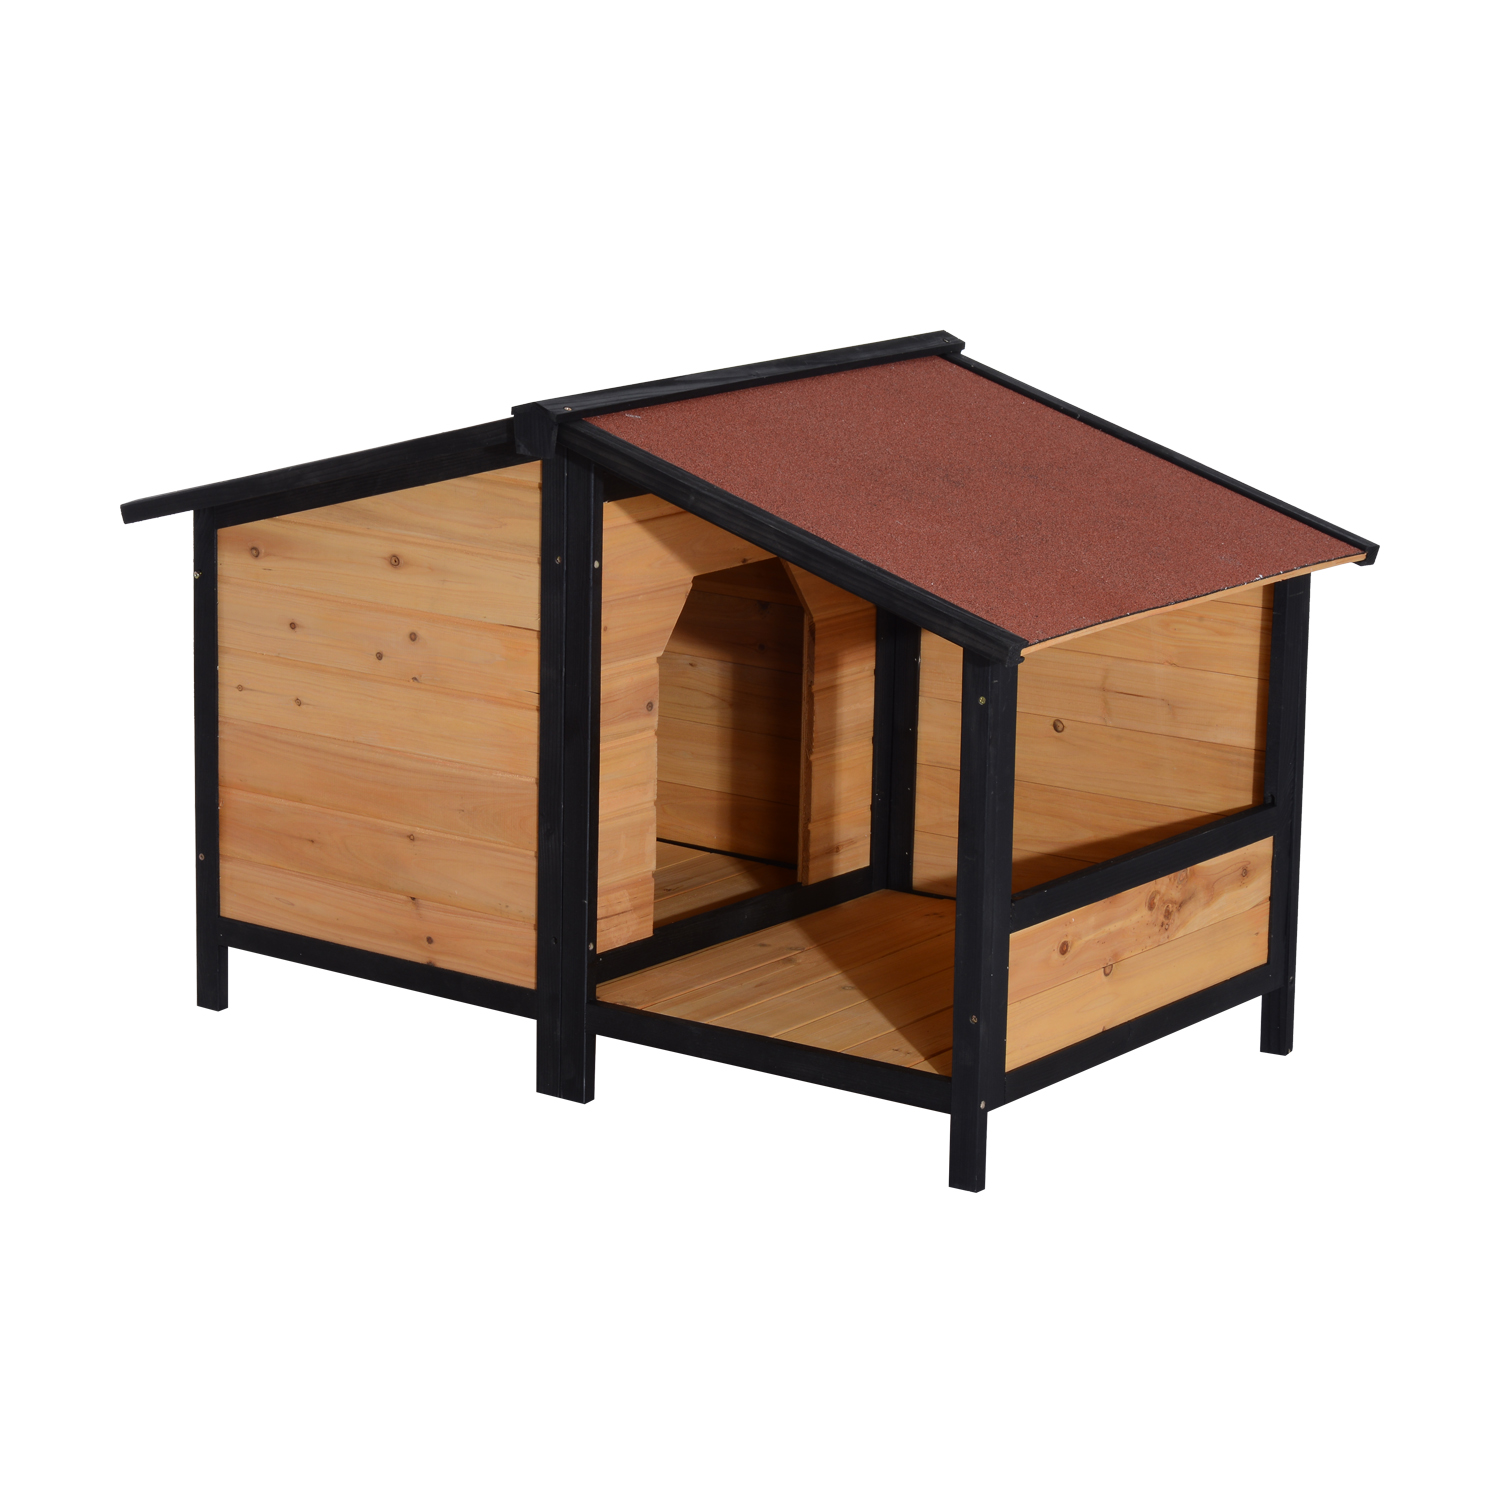 Aosom | Pawhut Small Elevated Dog House with Opening Roof - Pets - Clearance  sc 1 st  Aosom & Aosom | Pawhut Small Elevated Dog House with Opening Roof - Pets ... memphite.com